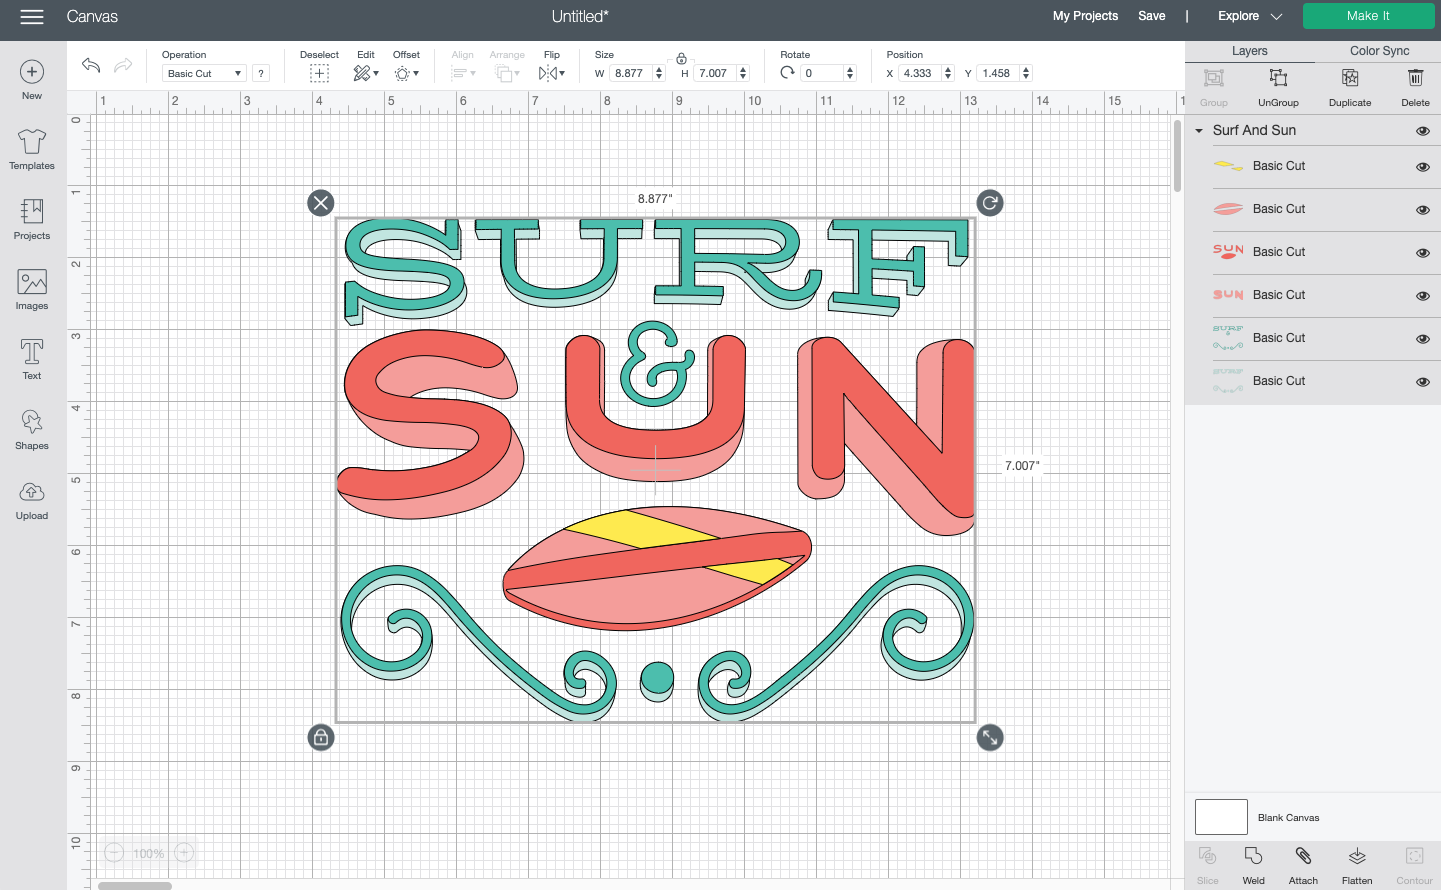 Cricut Design Space: Surf and Sun image from the Cricut Image Library